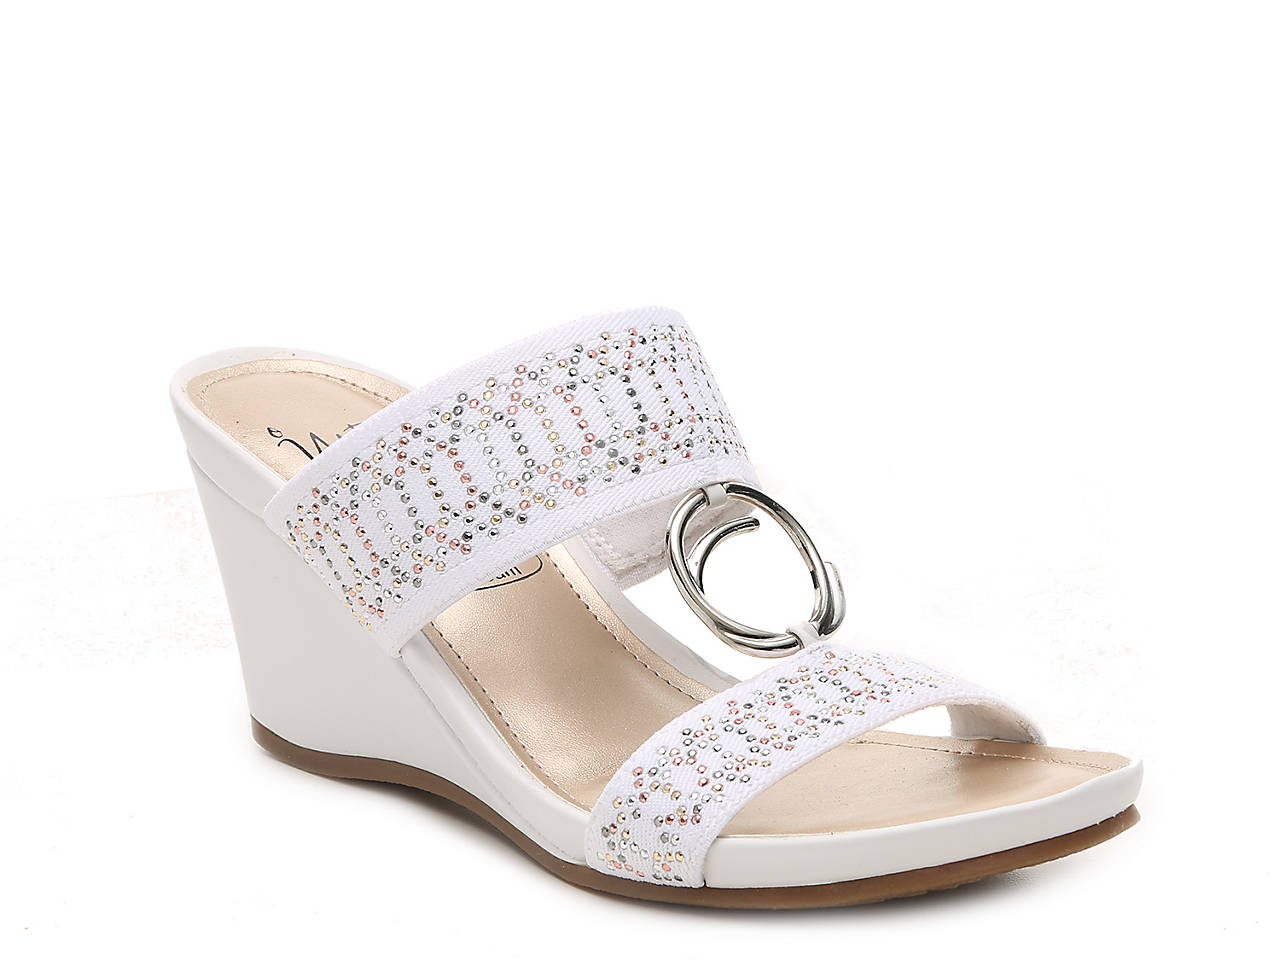 Verban Wedge Sandal by Impo